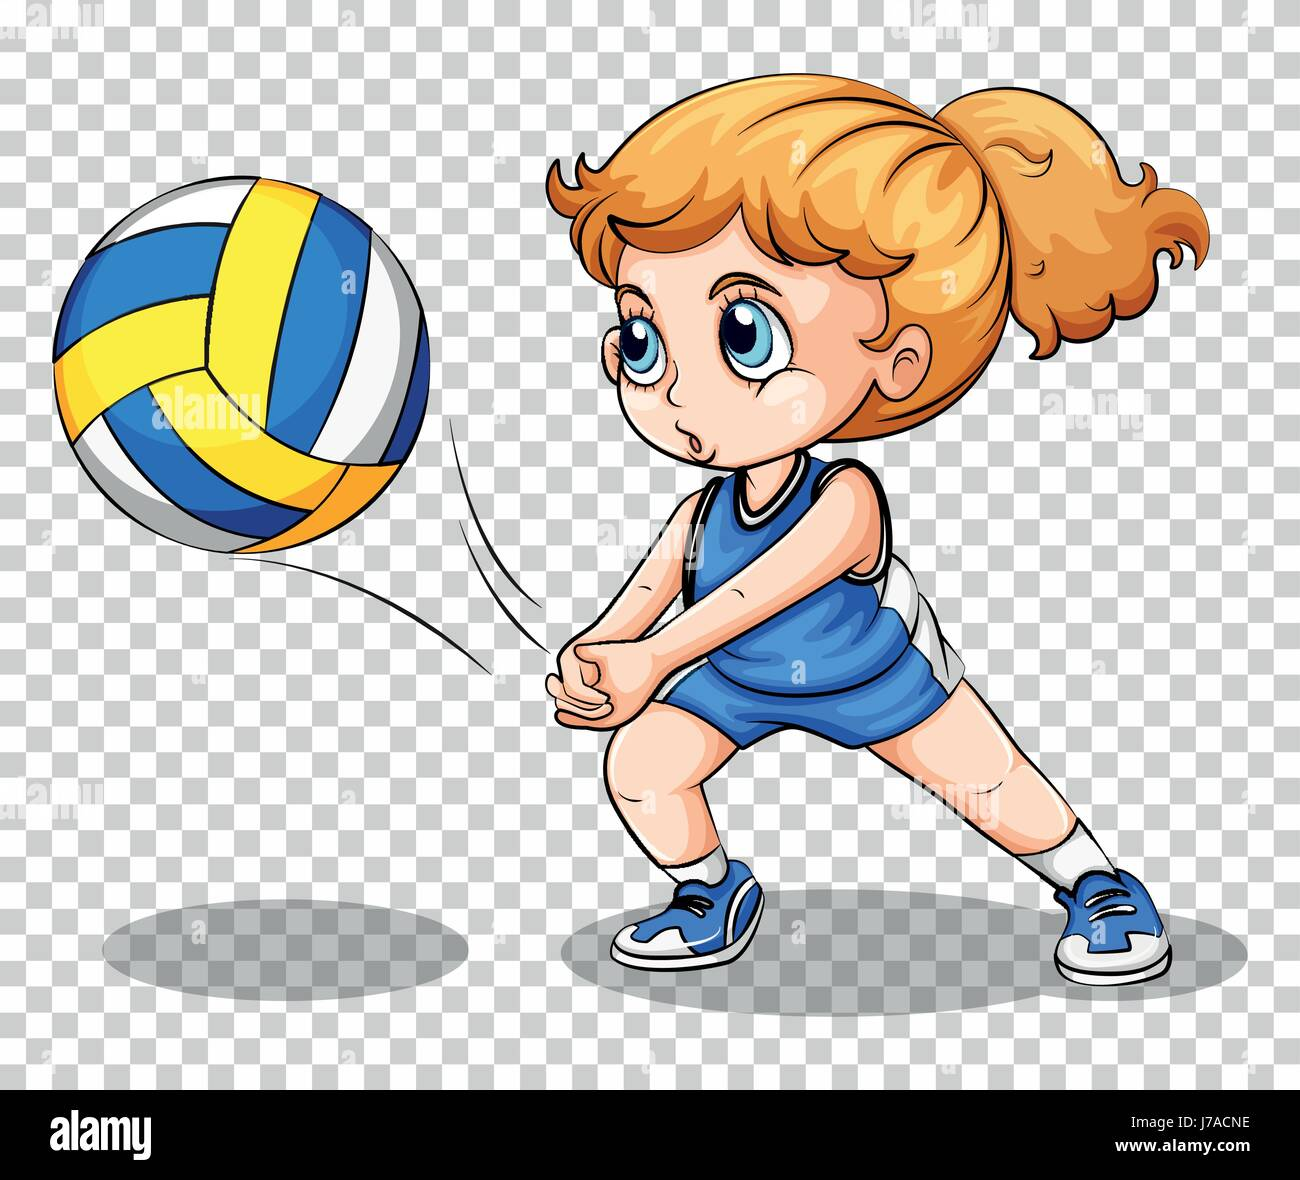 Volleyball Player On Transparent Background Illustration Stock Vector Image Art Alamy